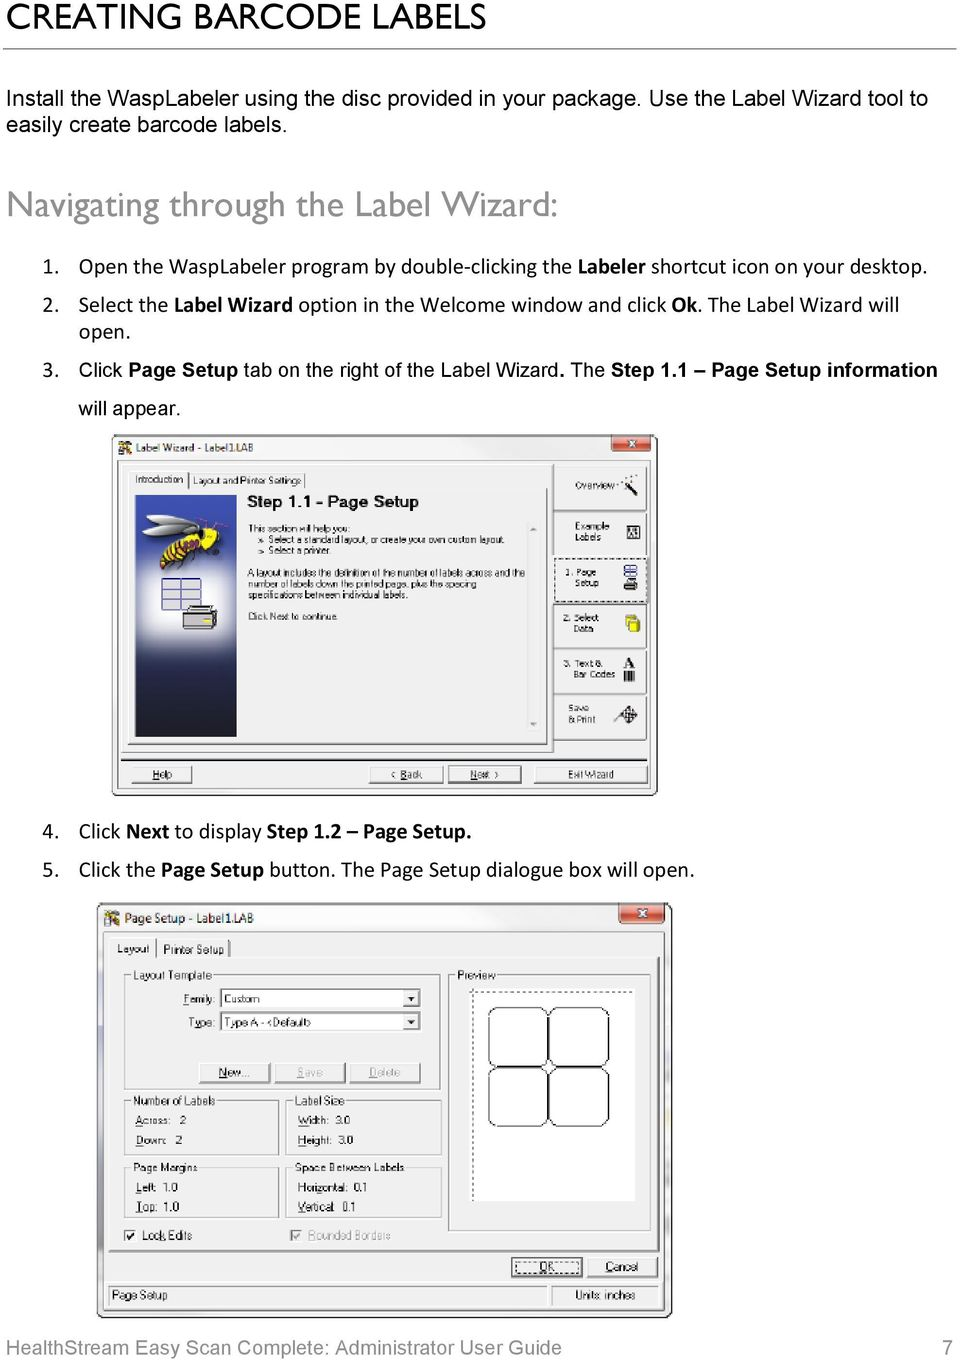 Select the Label Wizard option in the Welcome window and click Ok. The Label Wizard will open. 3. Click Page Setup tab on the right of the Label Wizard. The Step 1.